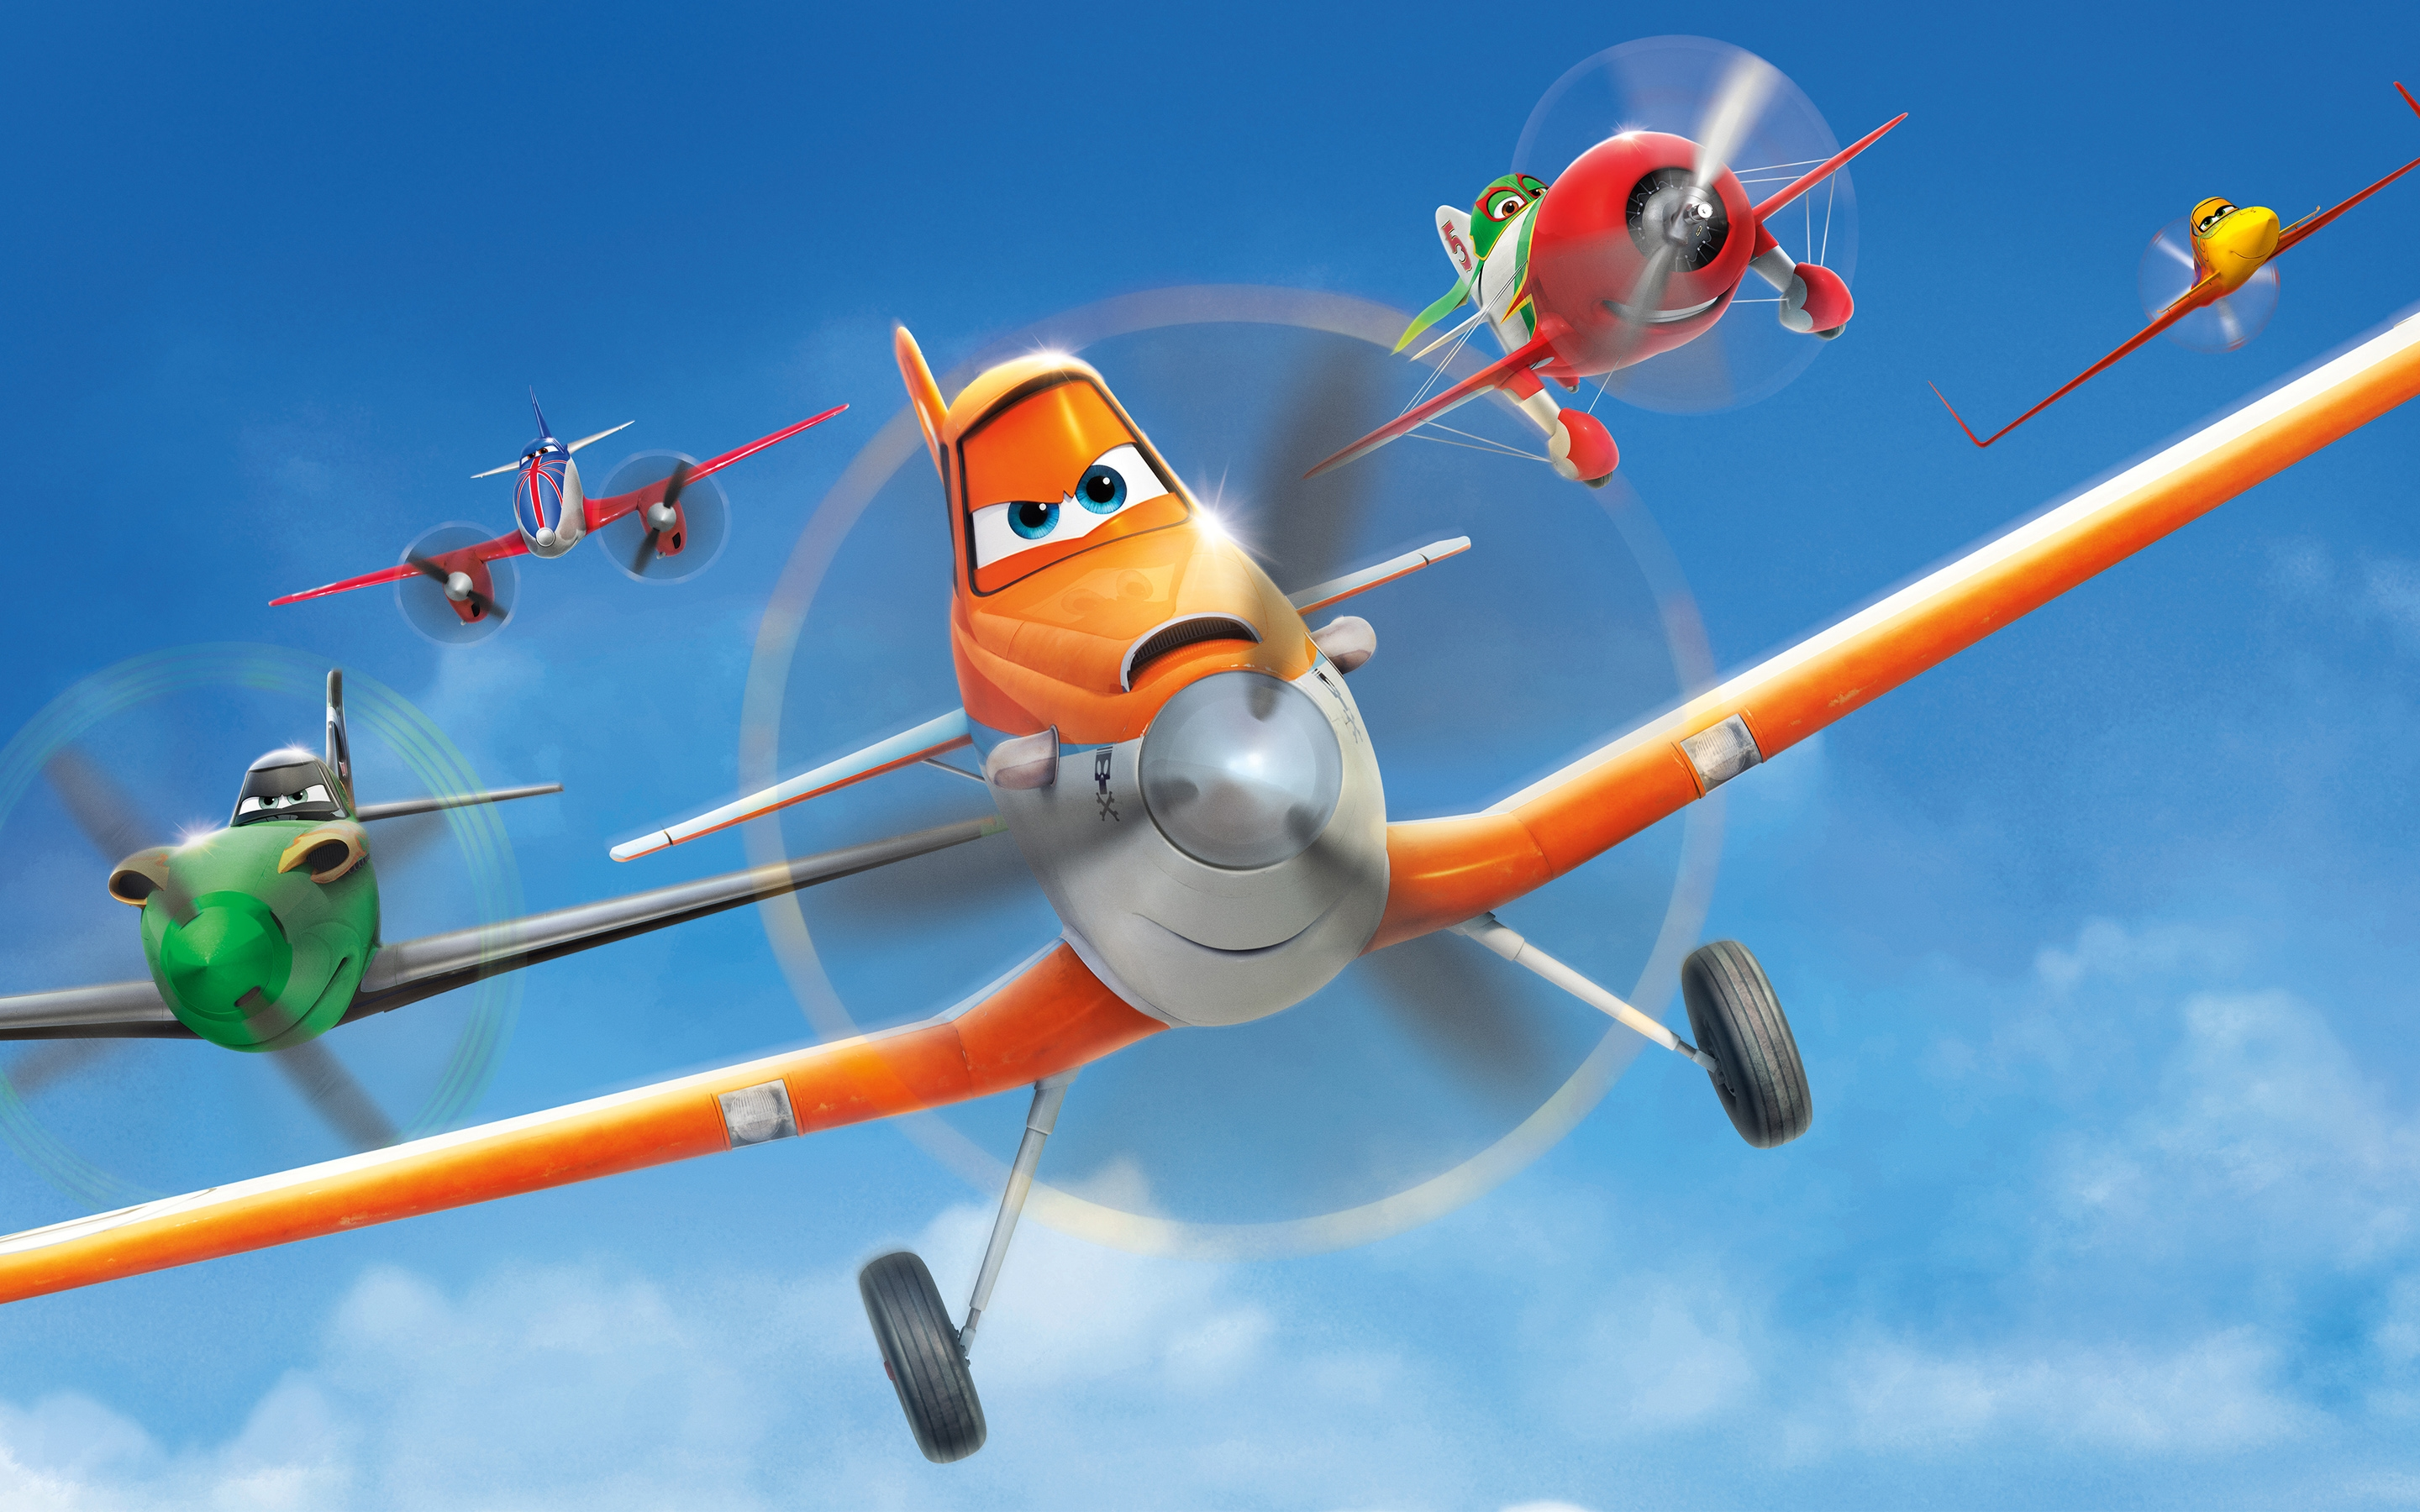 disney pixar planes free hd wallpaper